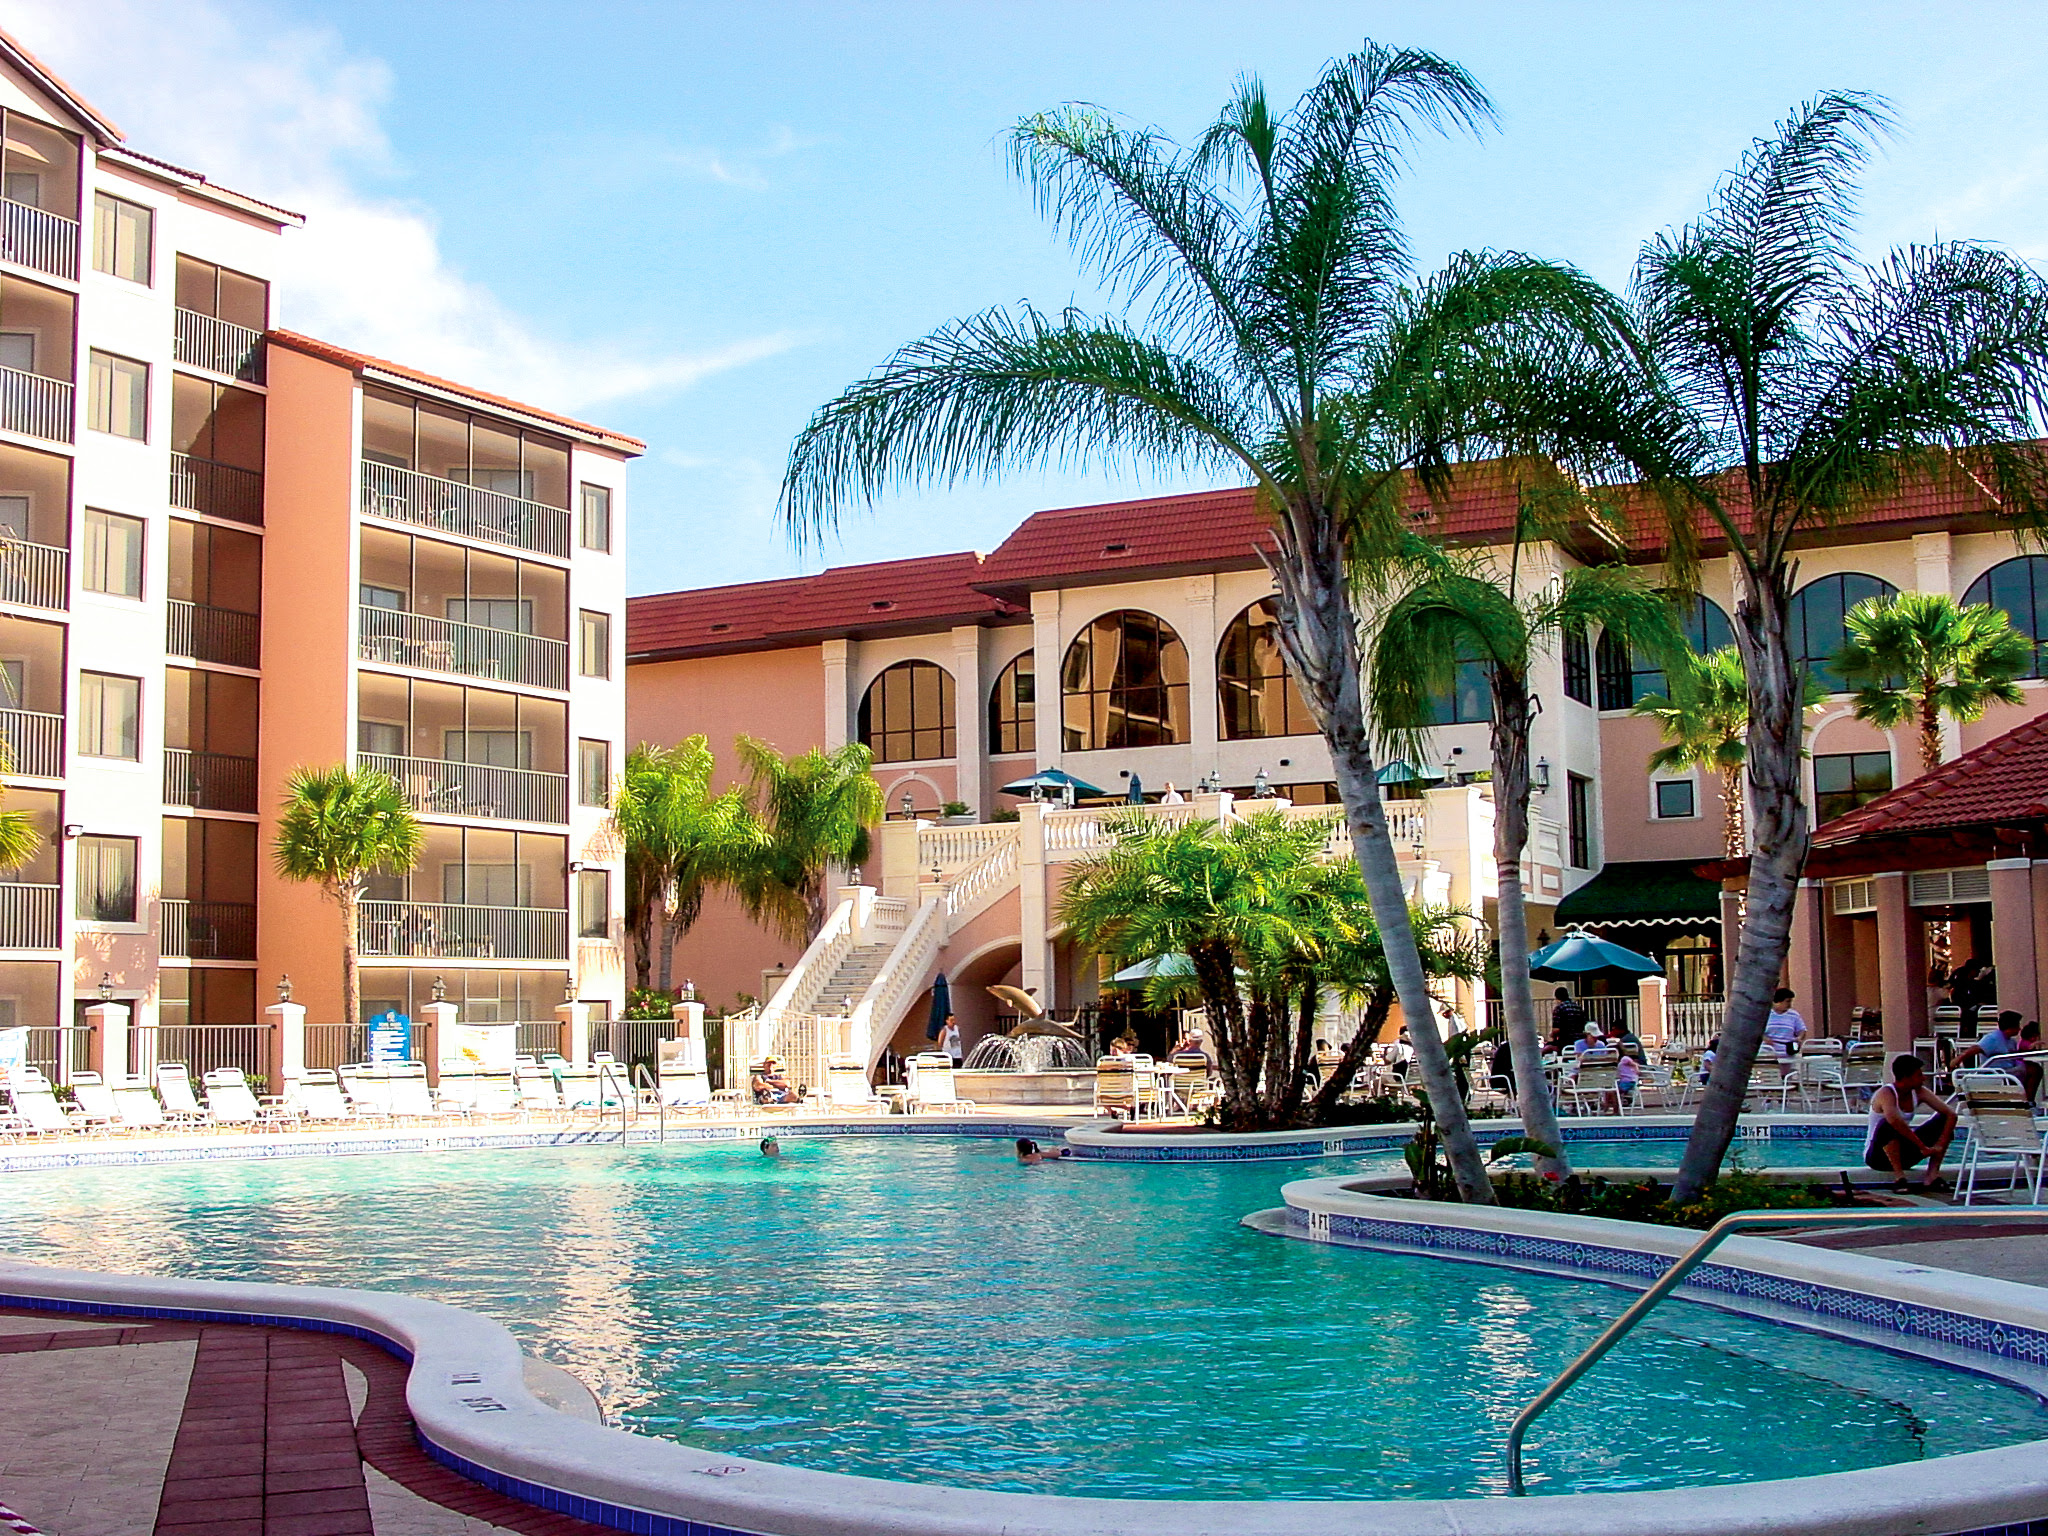 Enjoy a 3day2night Orlando Resort Getaway at Westgate